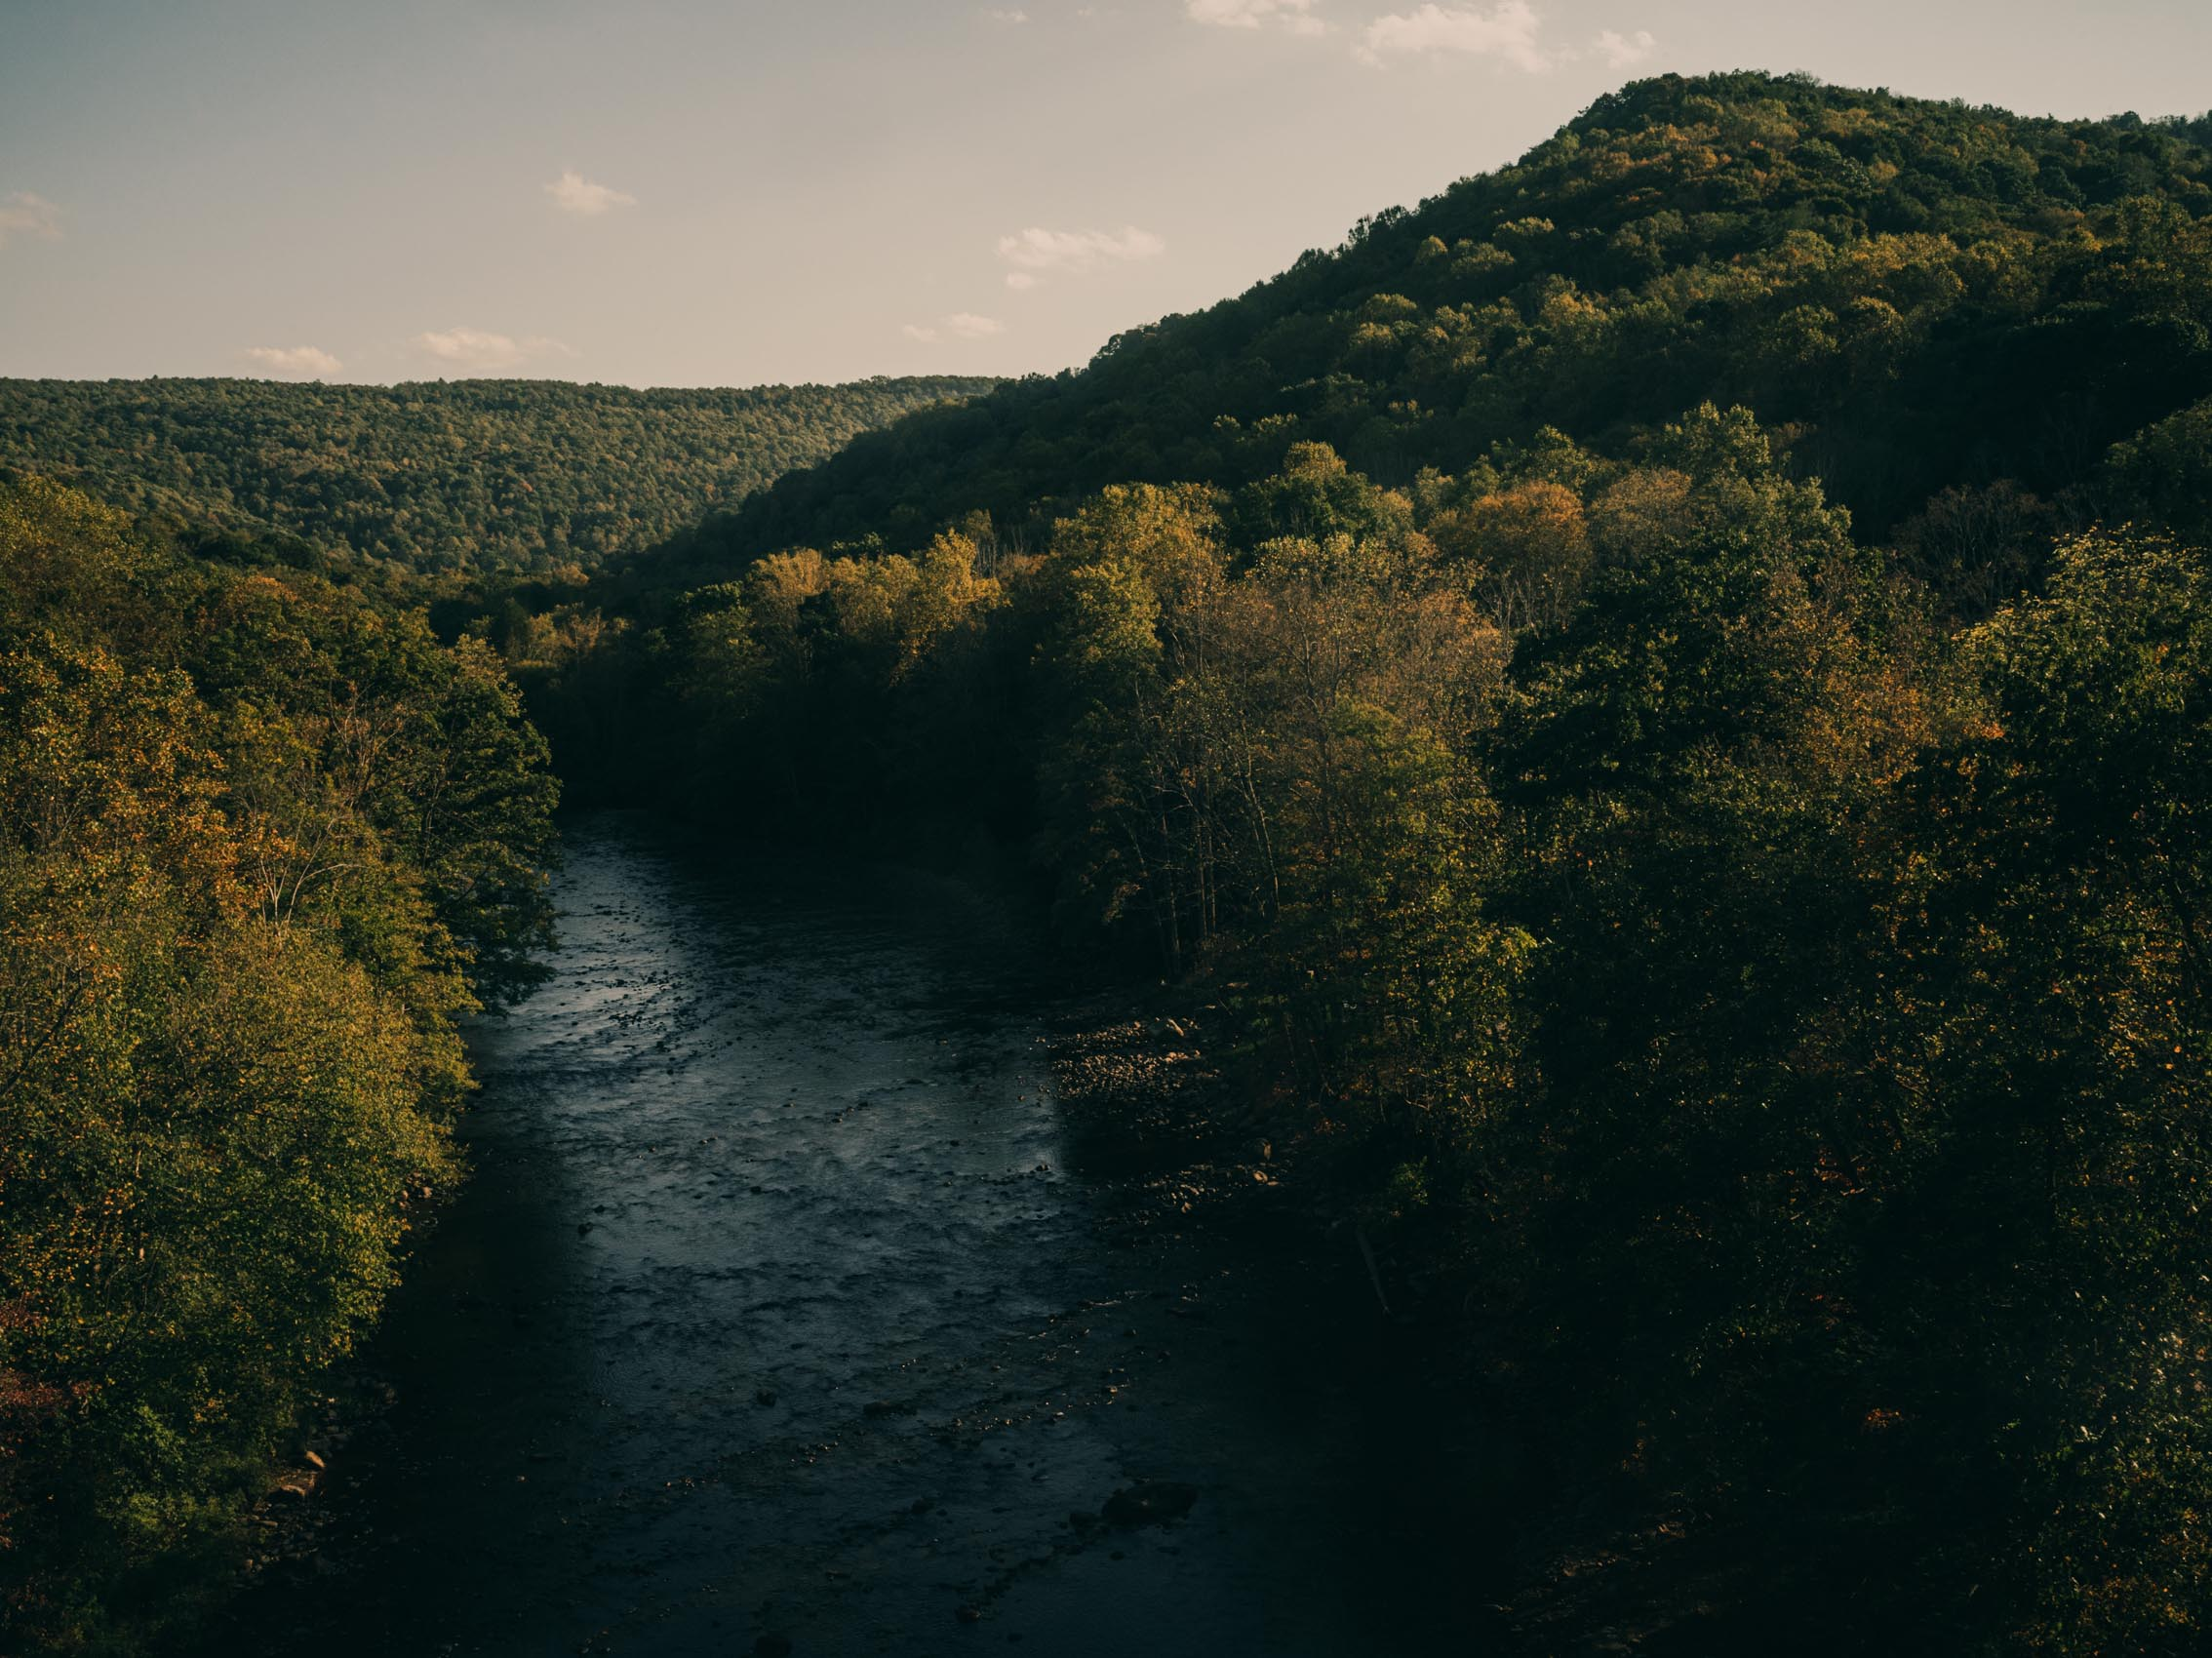 Youghiogheny River with trees and mountains